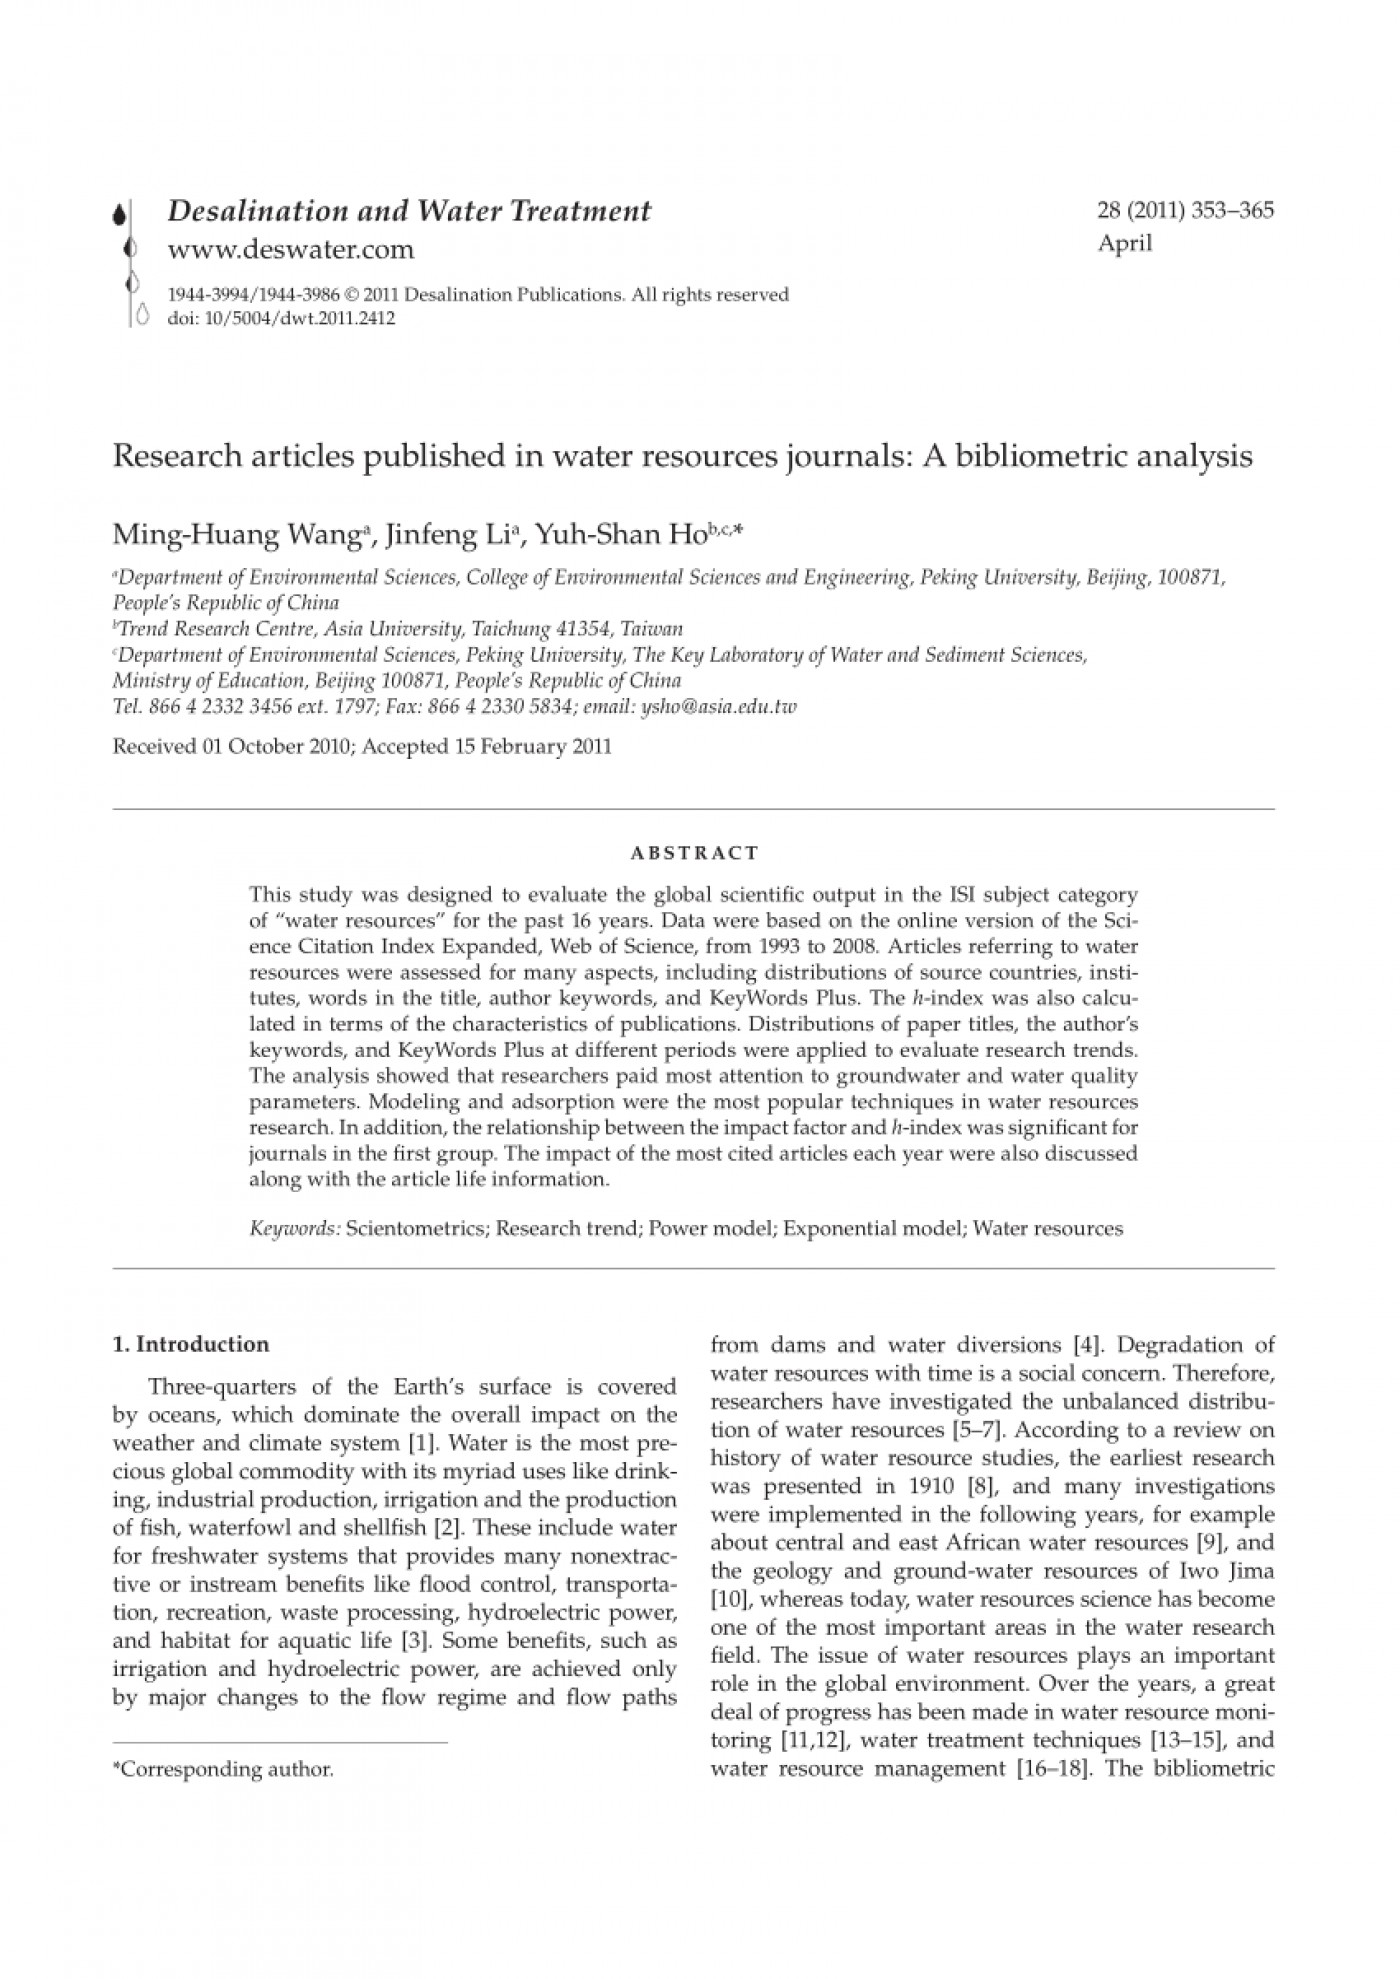 001 Published Research Paper Breathtaking About Bullying Papers In Artificial Intelligence Mathematics 1400